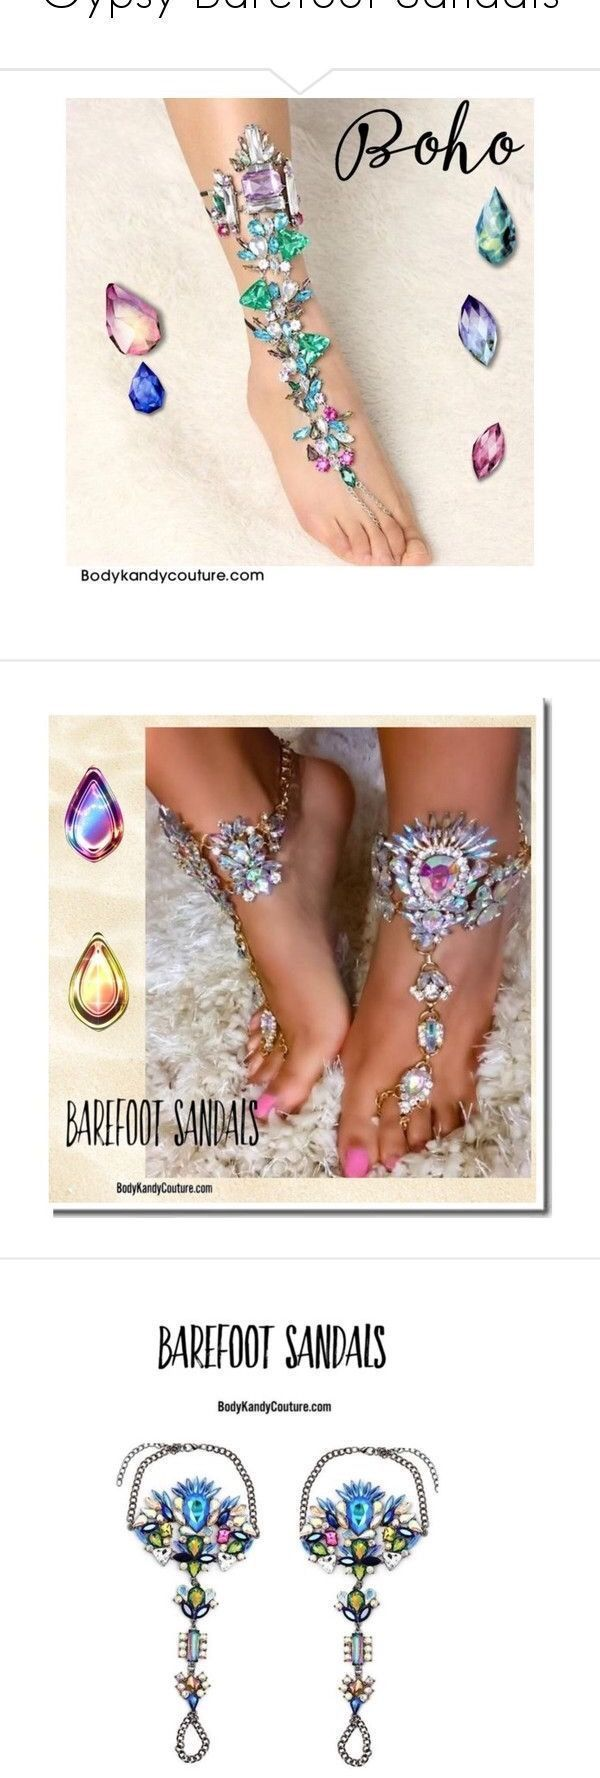 Gypsy Barefoot Sandals by bodykandycouture. Jeweled Barefoot Sandals Wedding Beach Boho Foot Jewelry with Gold Ankle Chains and Beaded Rhinestones. Beach Wedding Theme Ideas, Gypsy Wedding Bohemian Foot Jewelry. Gorgeous Summer Barefoot Bridal Sandals.